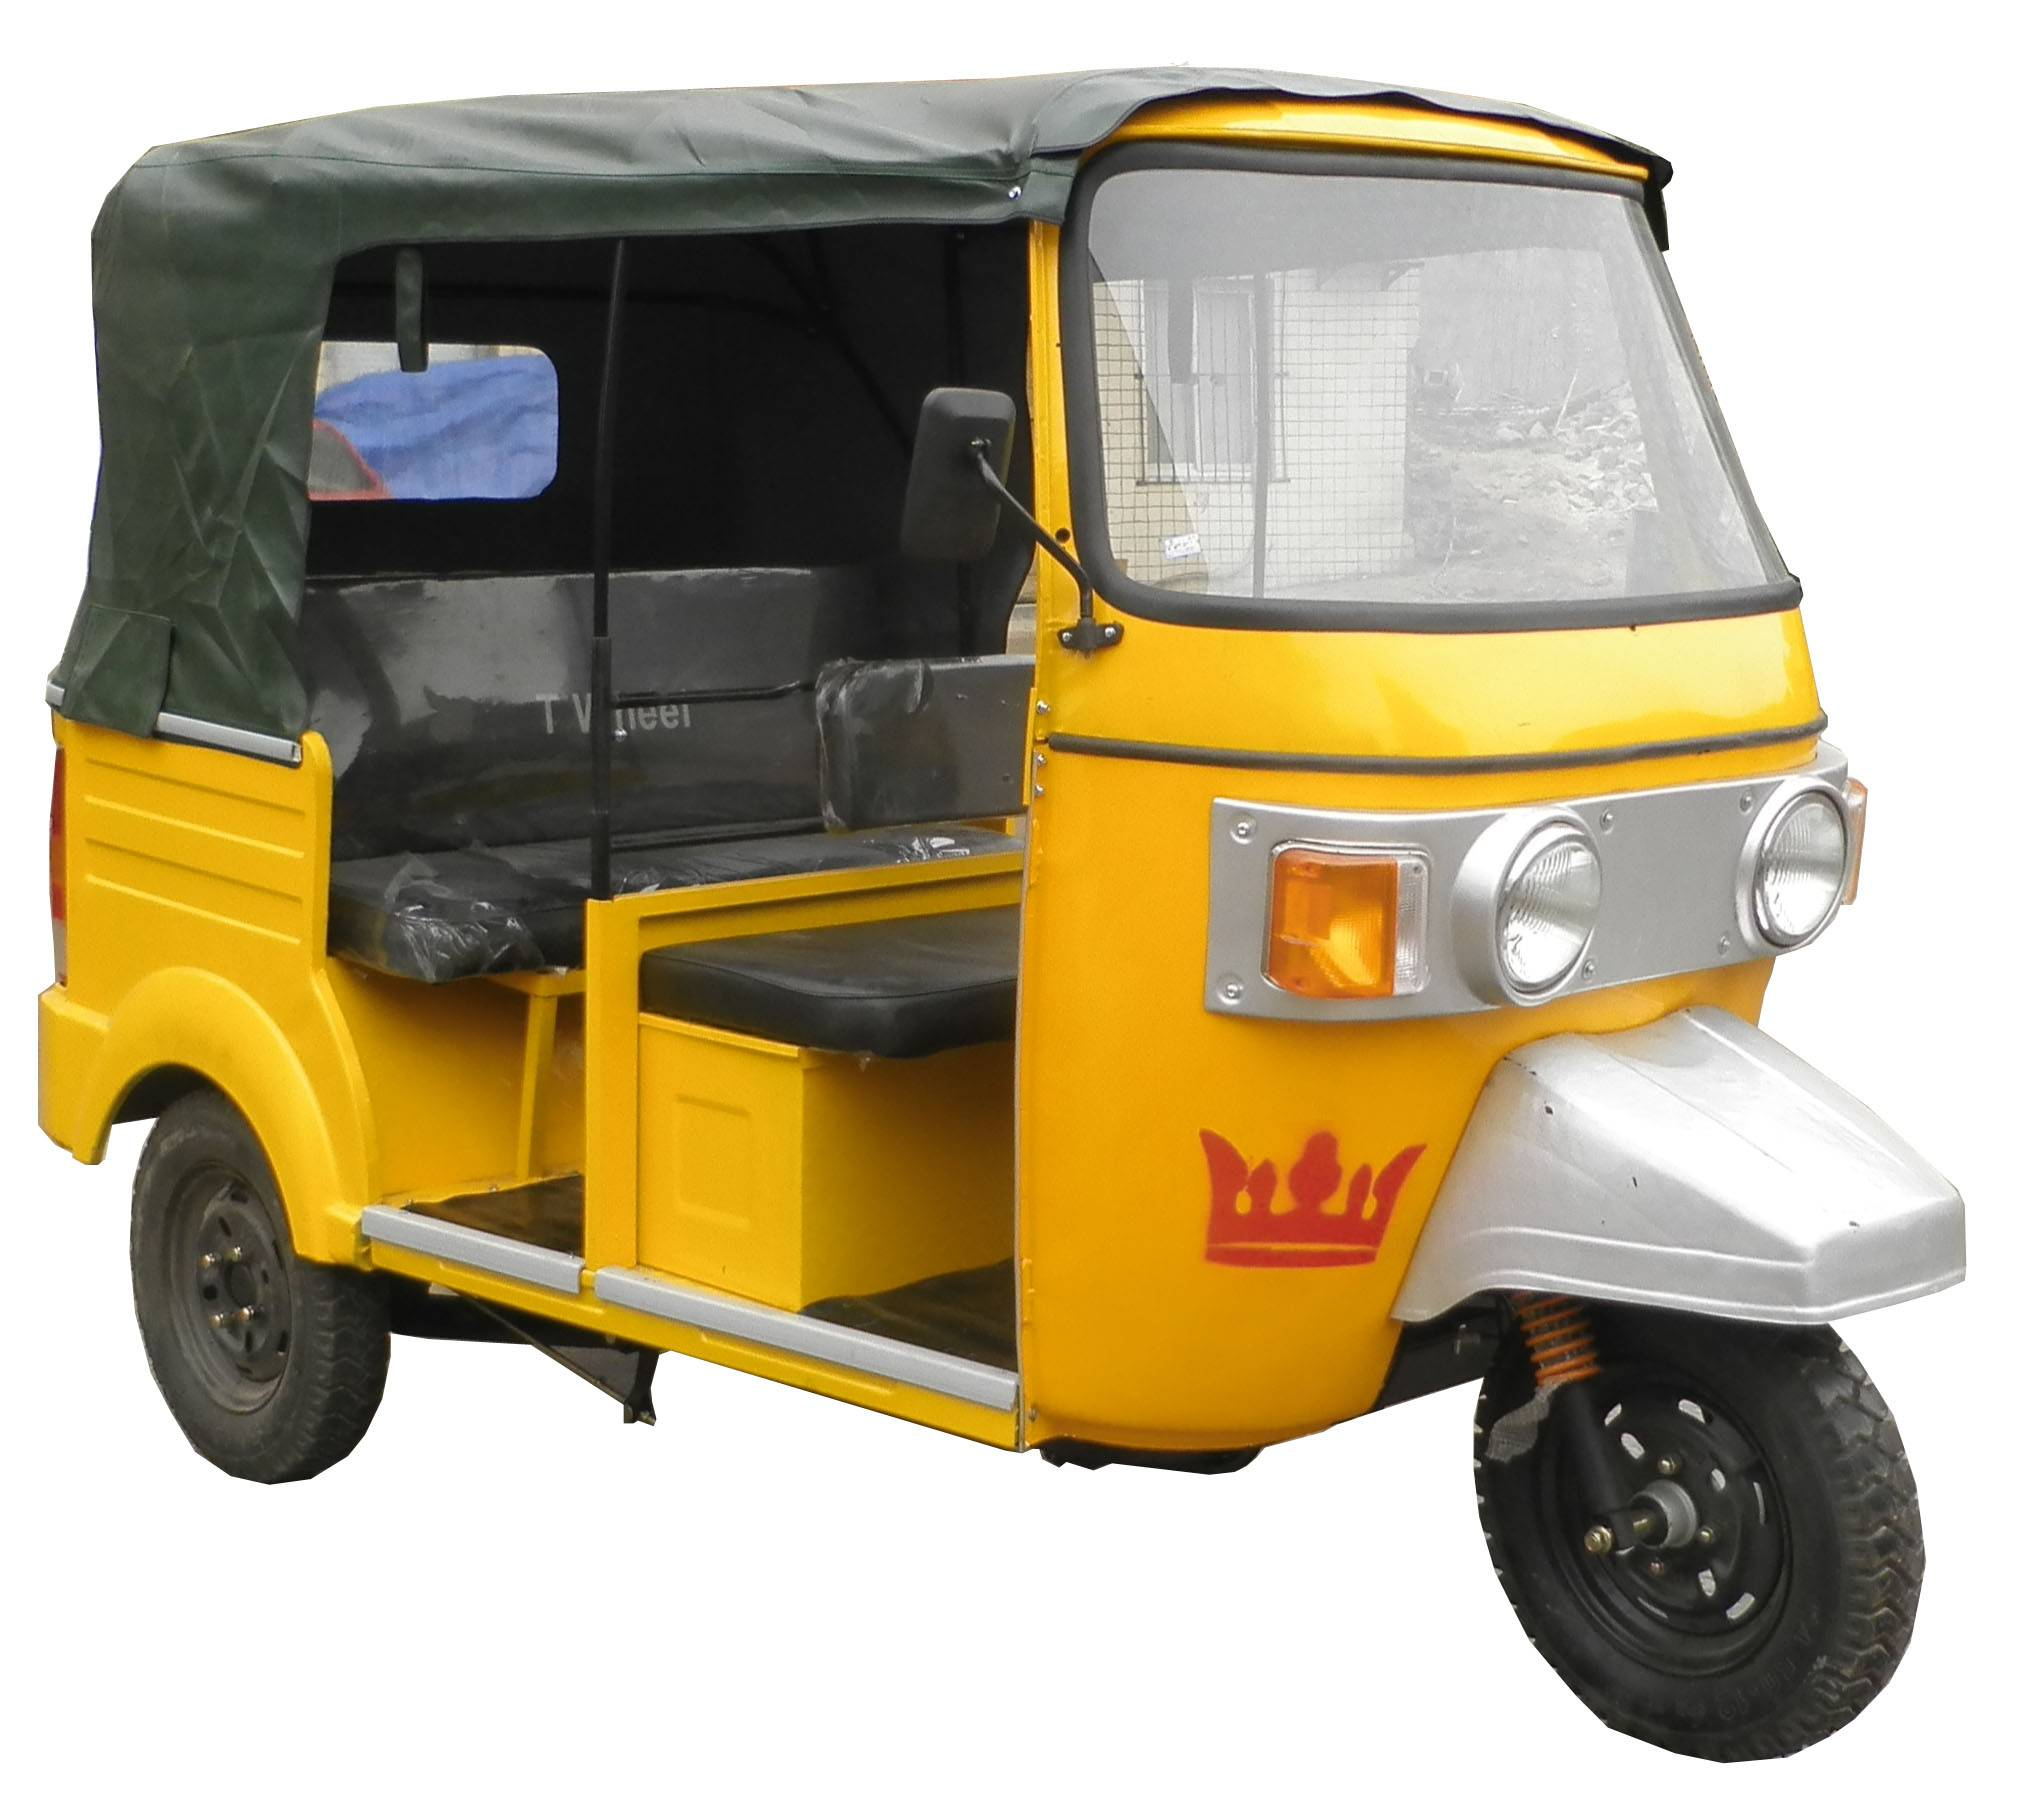 Piaggio Tricycle with rear engine, Taxi Tricycle, Moto Taxi